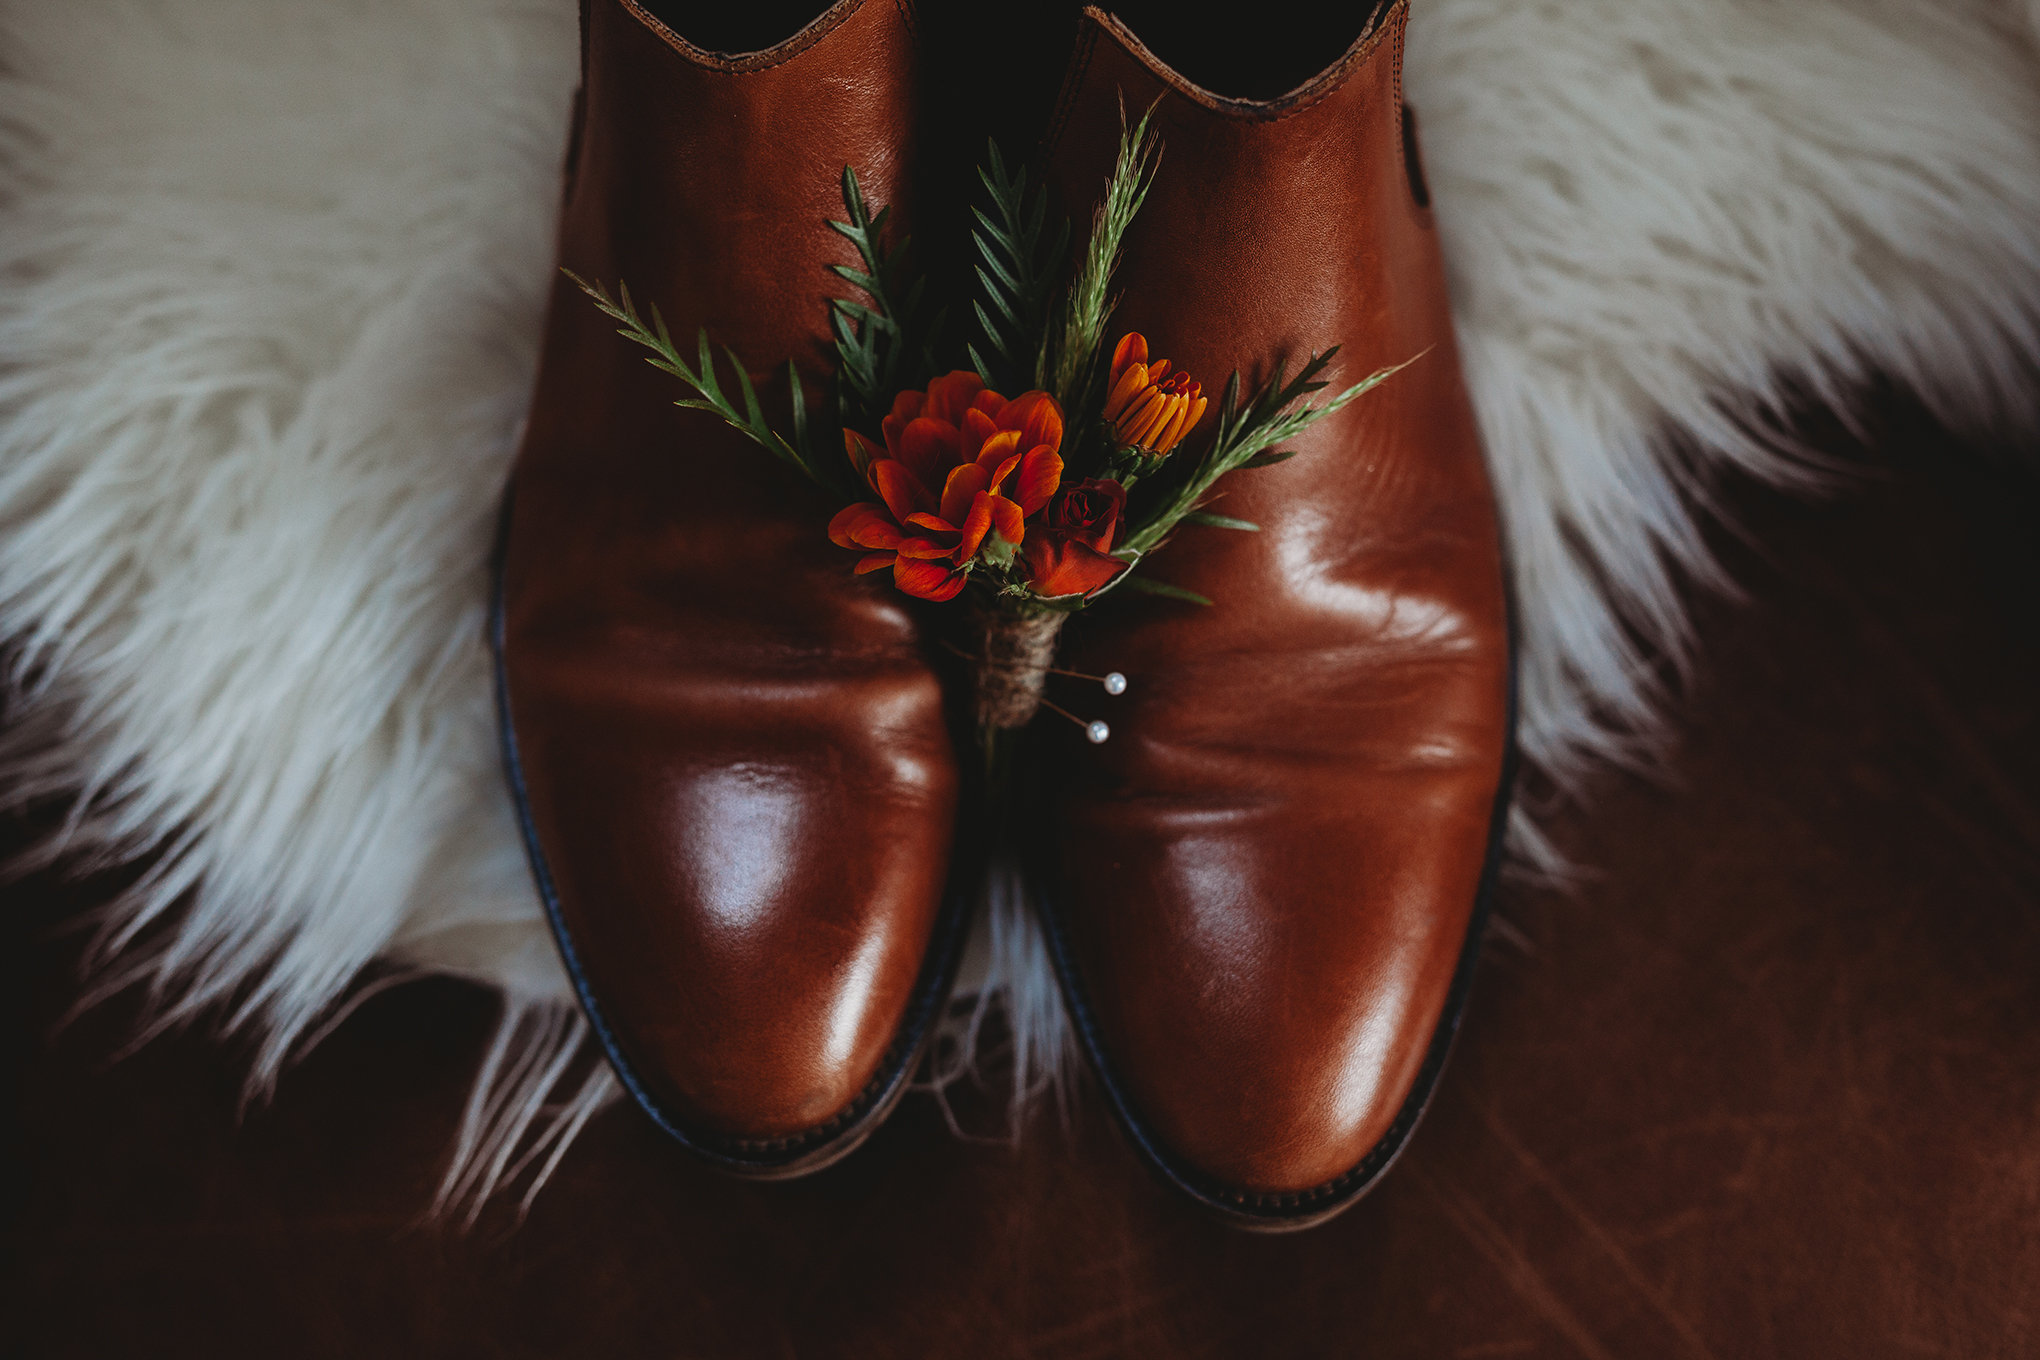 Categories: Weddings-Real Wedding: Jack & Renee - Photography by Clare Gordon Photography